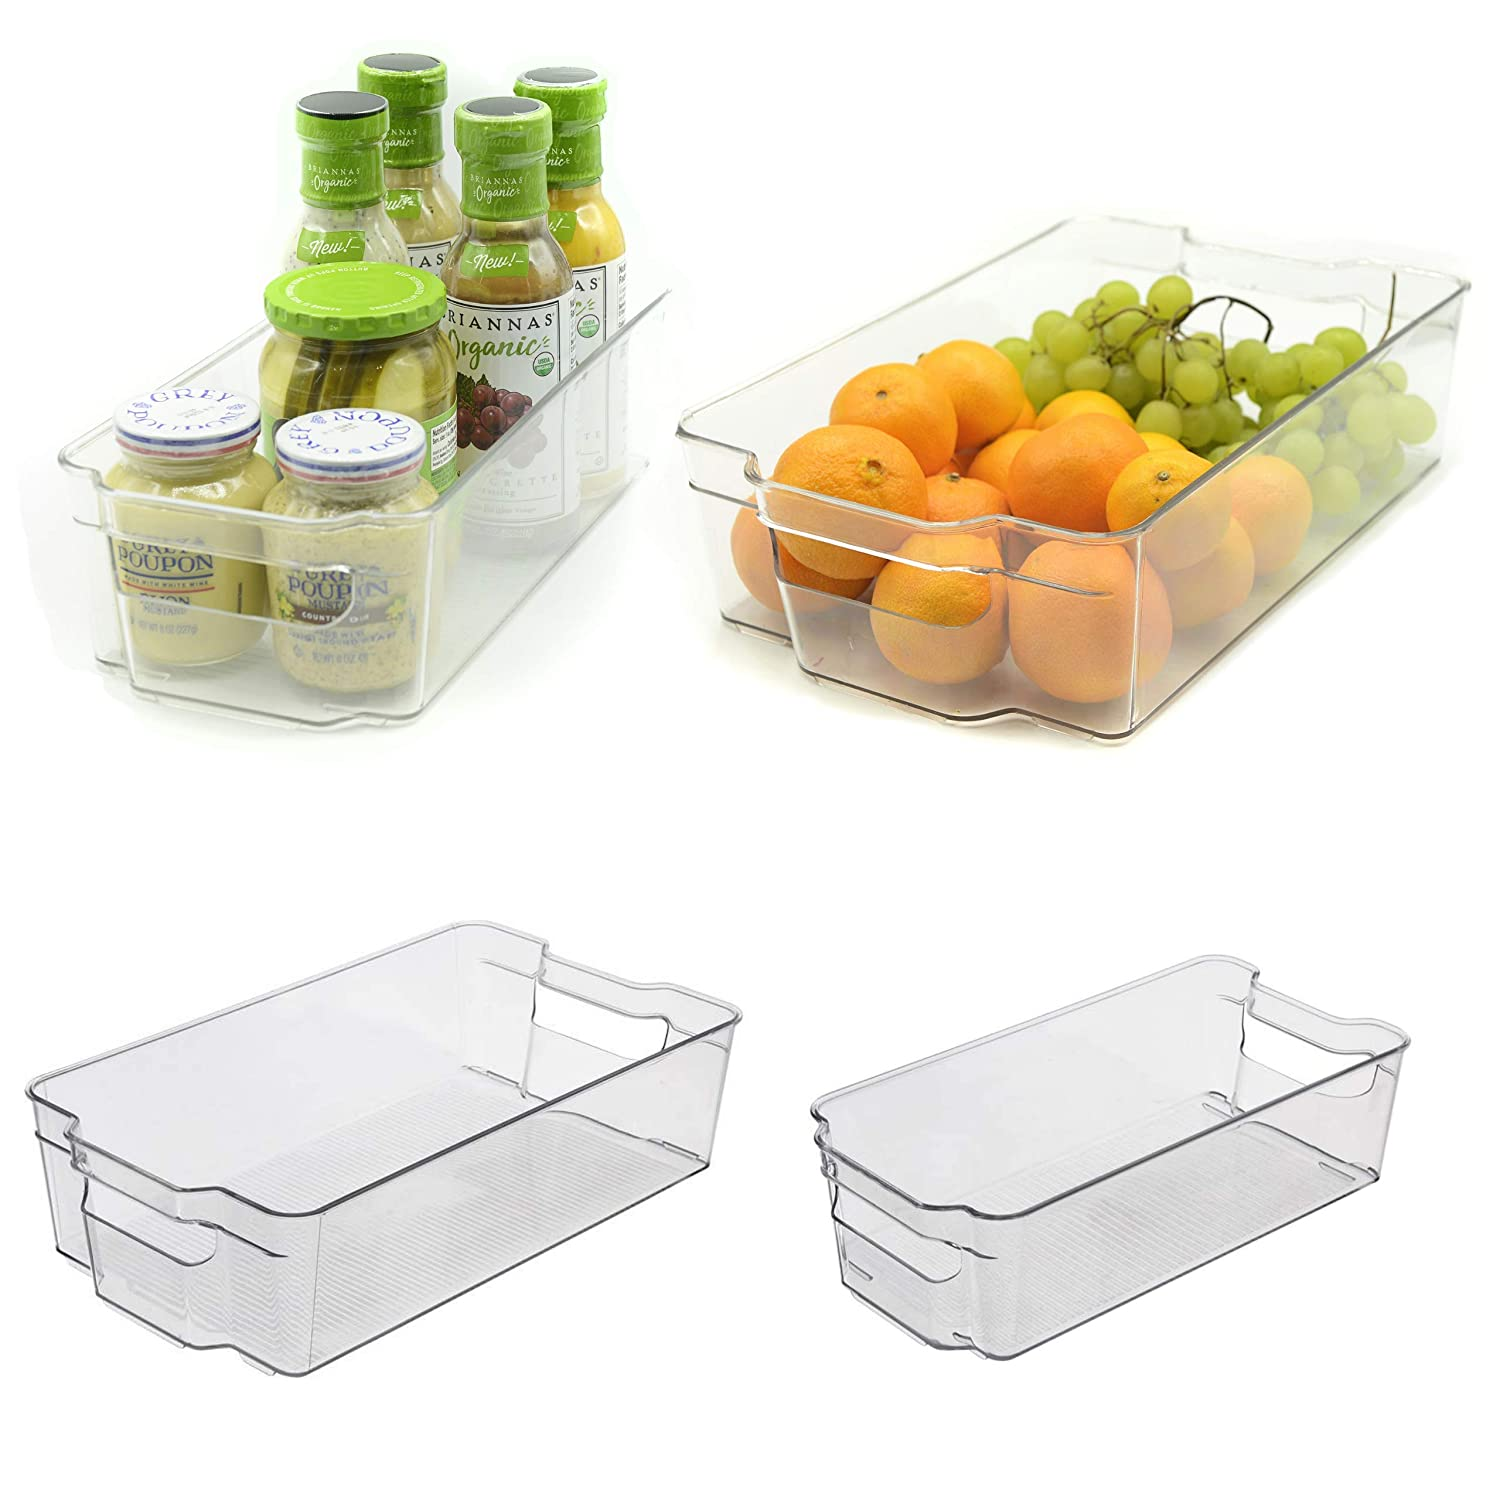 Organizer Bins, Stackable, Set of 4, Clear Storage Containers for Organizing - Pantry Organizer, Fridge Organizer Bins, Refrigerator Organizer Bins, Freezer Organizer, Dresser Drawer Organizers